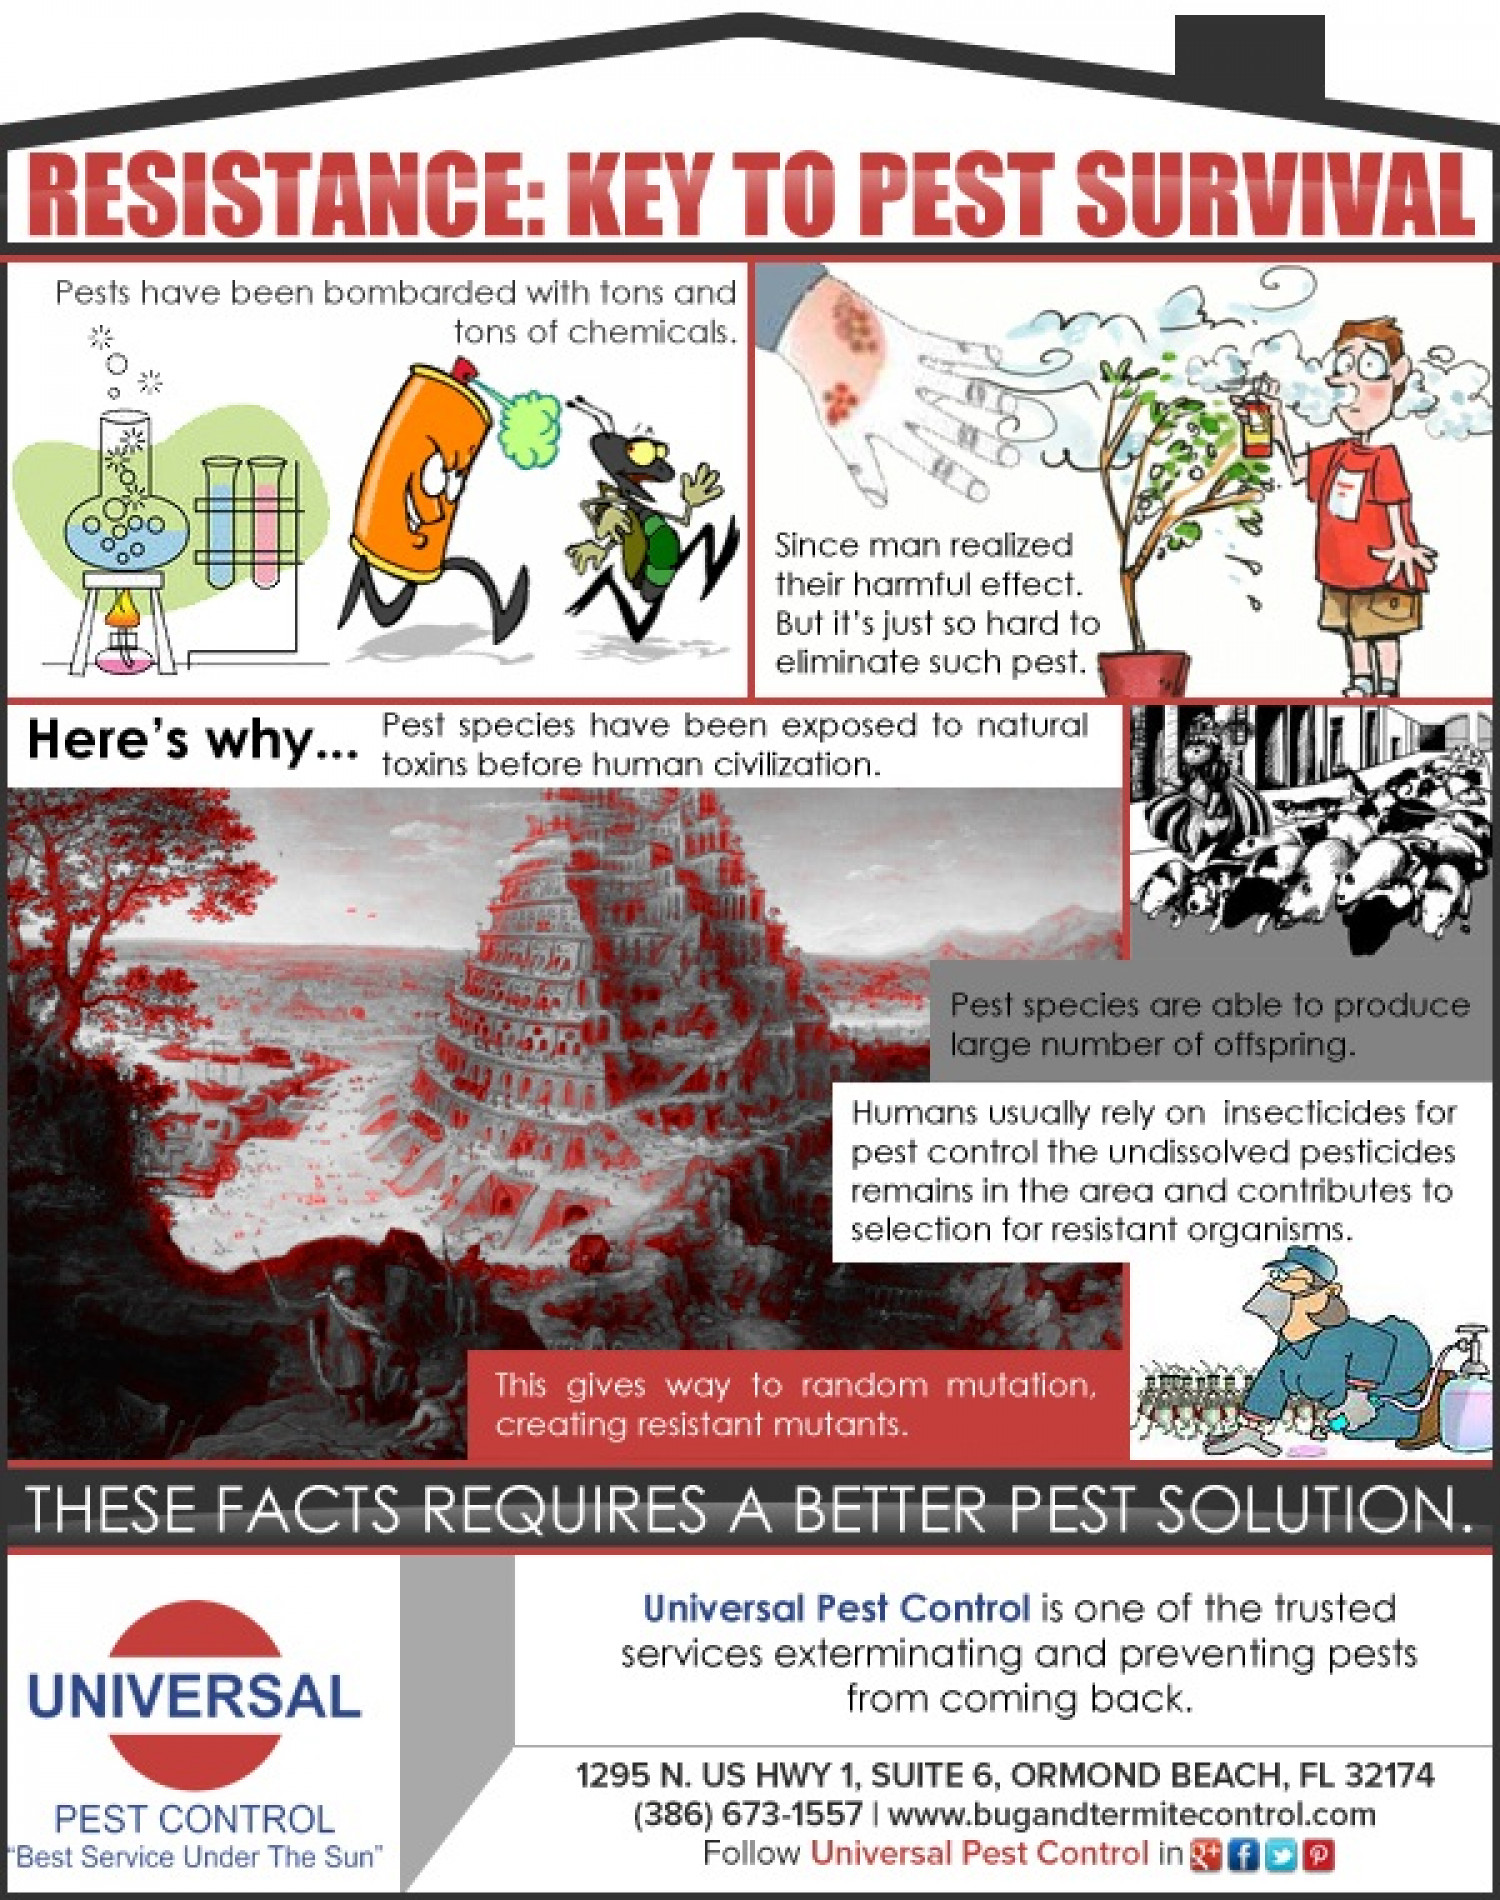 Resistance: Key to Pest Survival Infographic